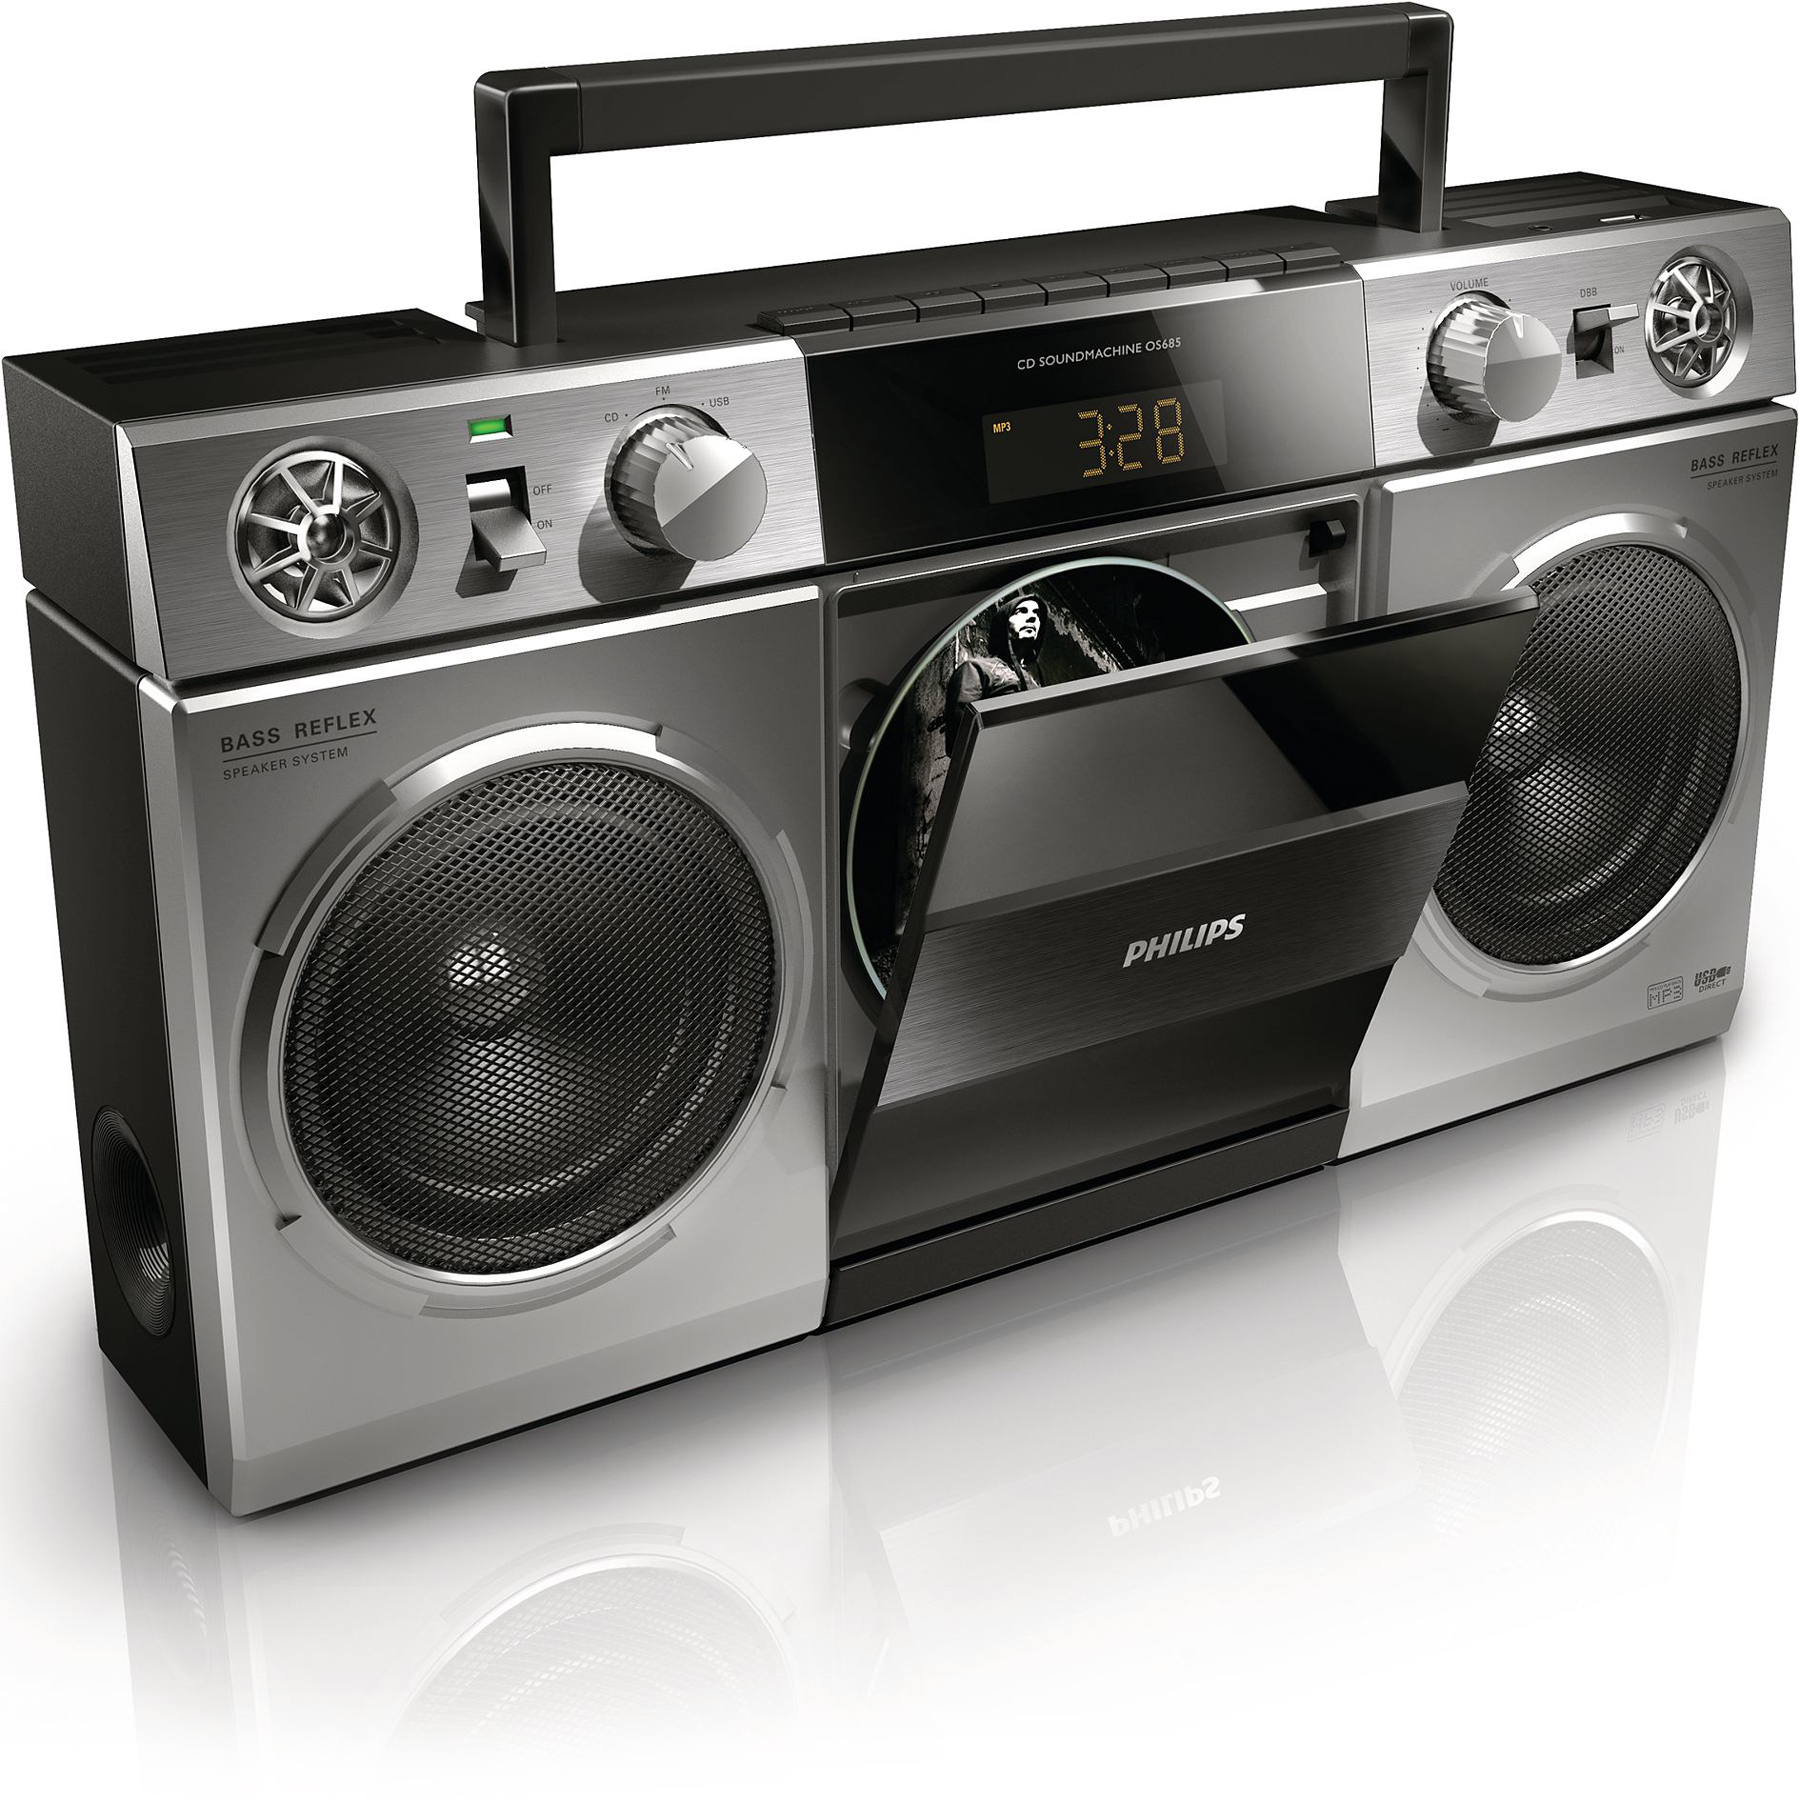 philips os685 radio radio r veil philips sur ldlc. Black Bedroom Furniture Sets. Home Design Ideas